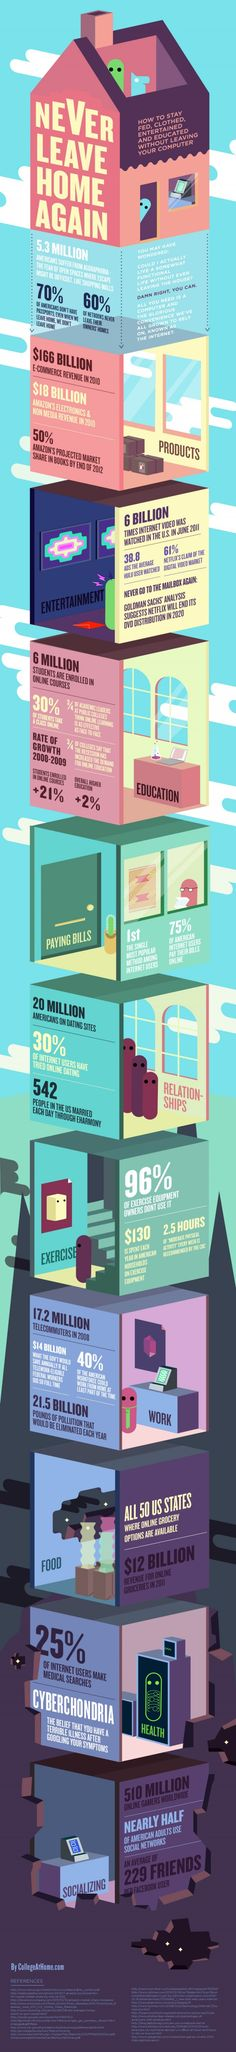 Unique Infographic Design, Never Leave Home Again #Infographic #Design (http://www.pinterest.com/aldenchong/)